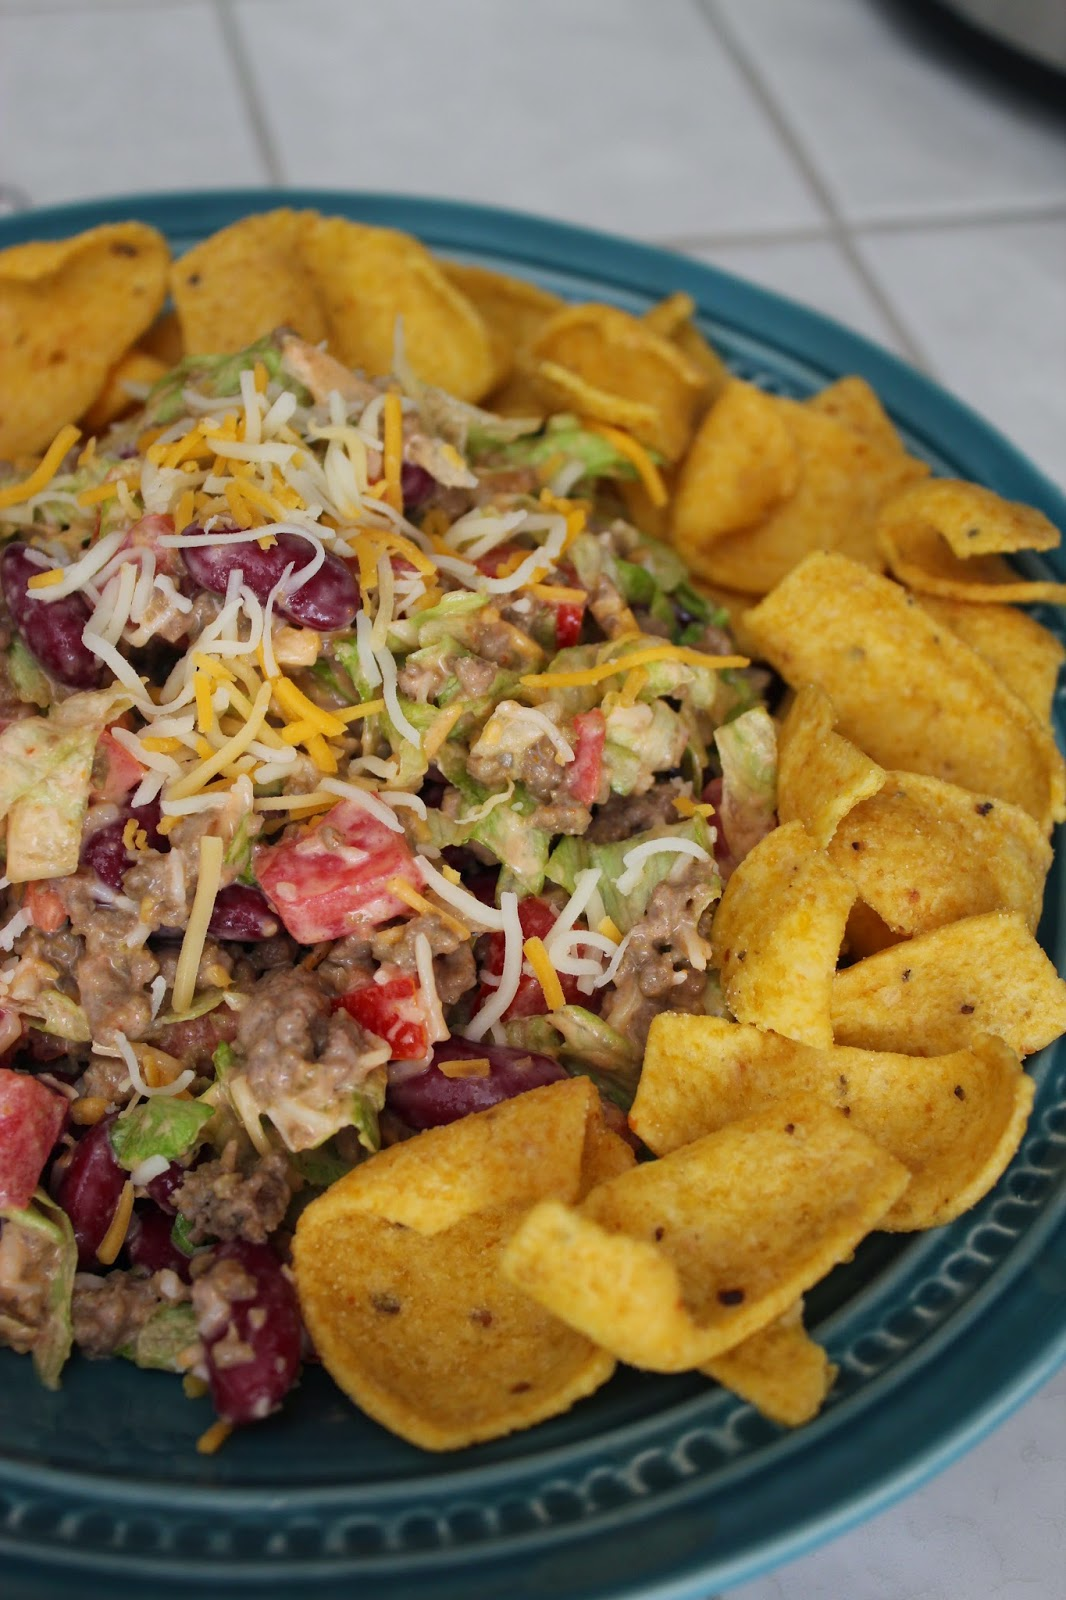 recipe: what salad goes with thousand island dressing [38]